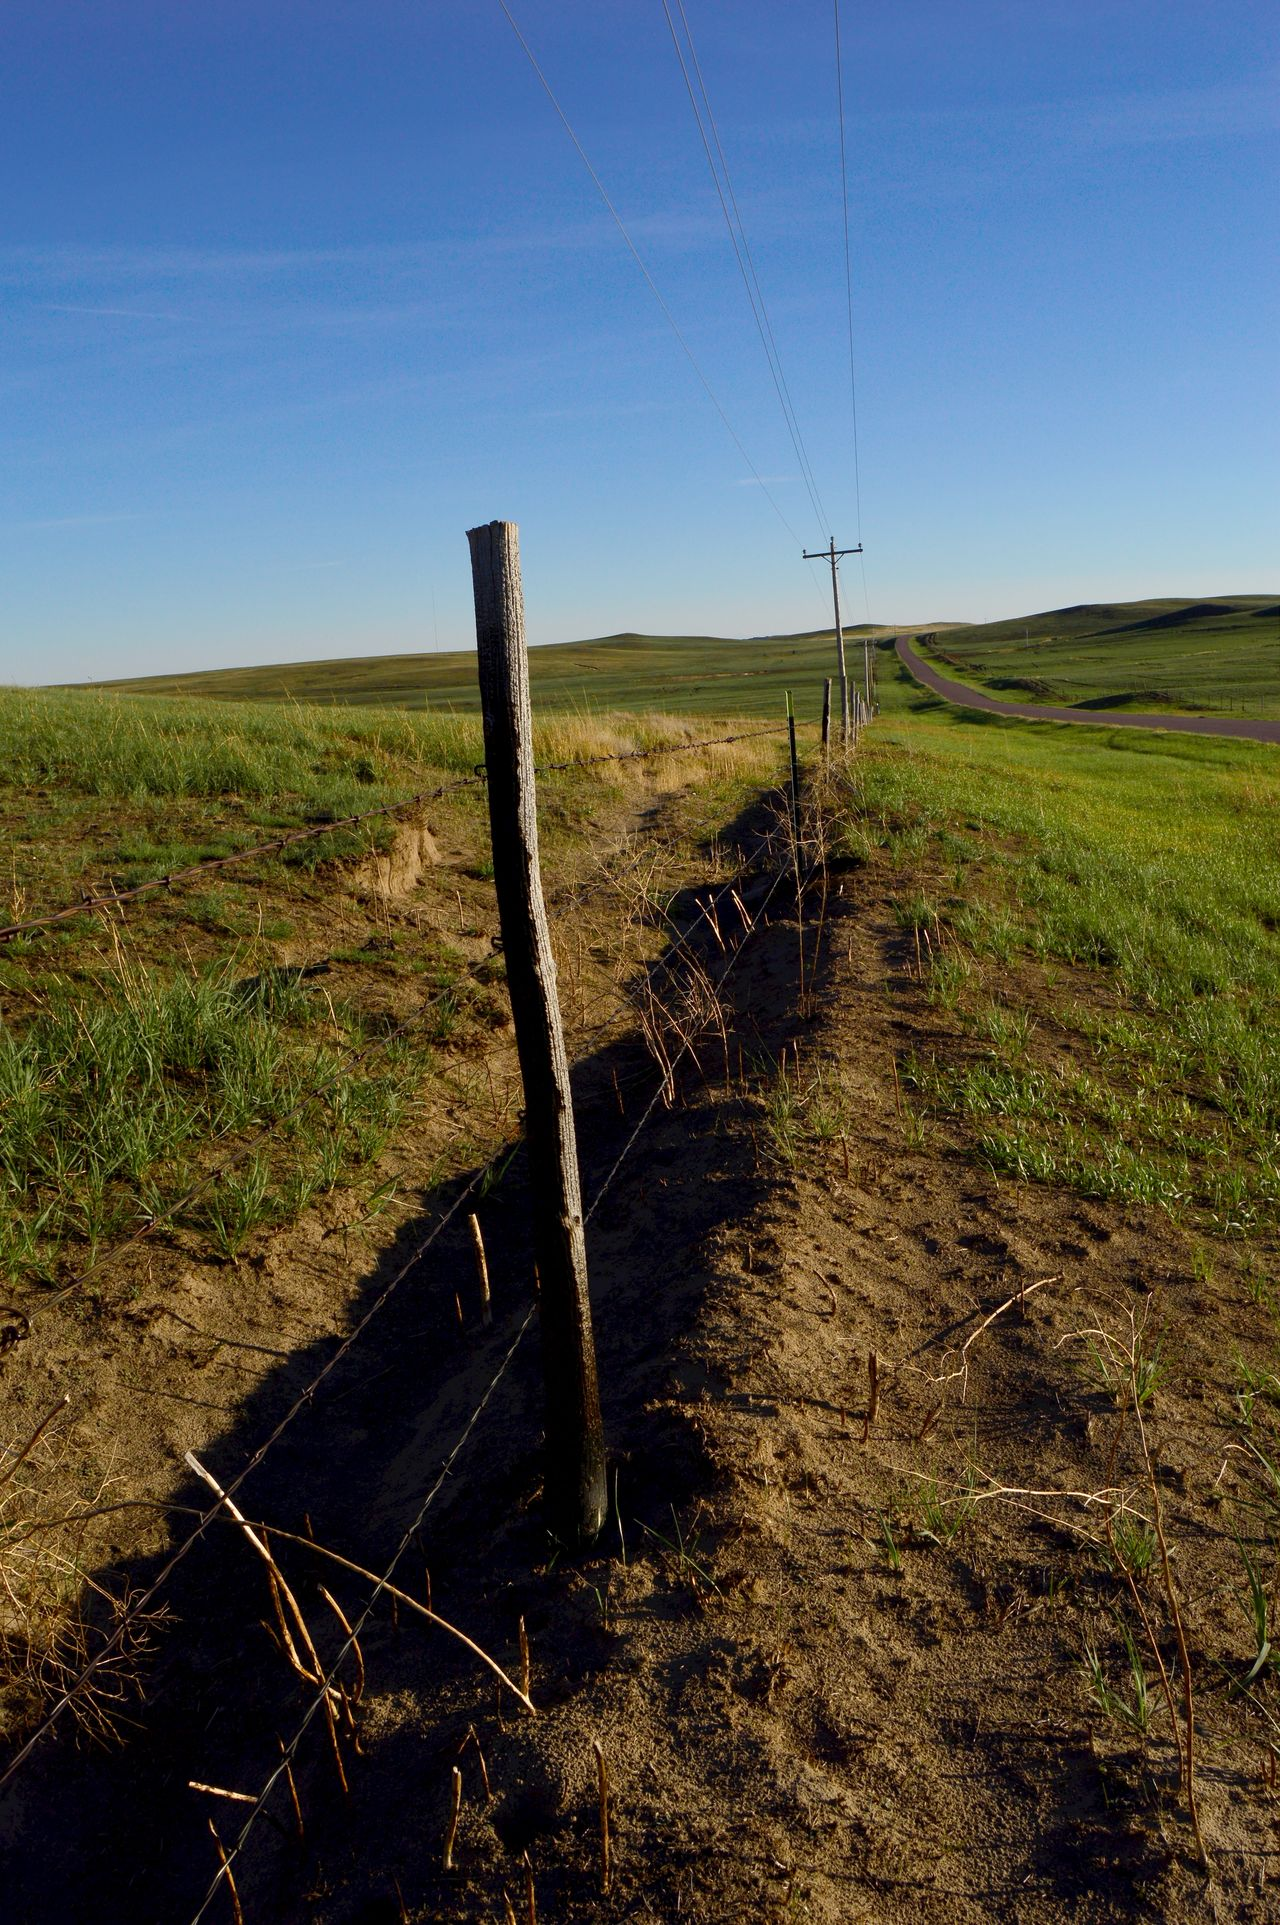 Rebuild fence Could See Smoke Quite A Few Mile Away Fire About 25 Miles Long & 3 Miles Wide Fire Was Back In July 2016 Miles Of Fence Were Burned In Fire Prairie Center Wyoming Remote Rural Scene Wind Blew Really Hard That Day